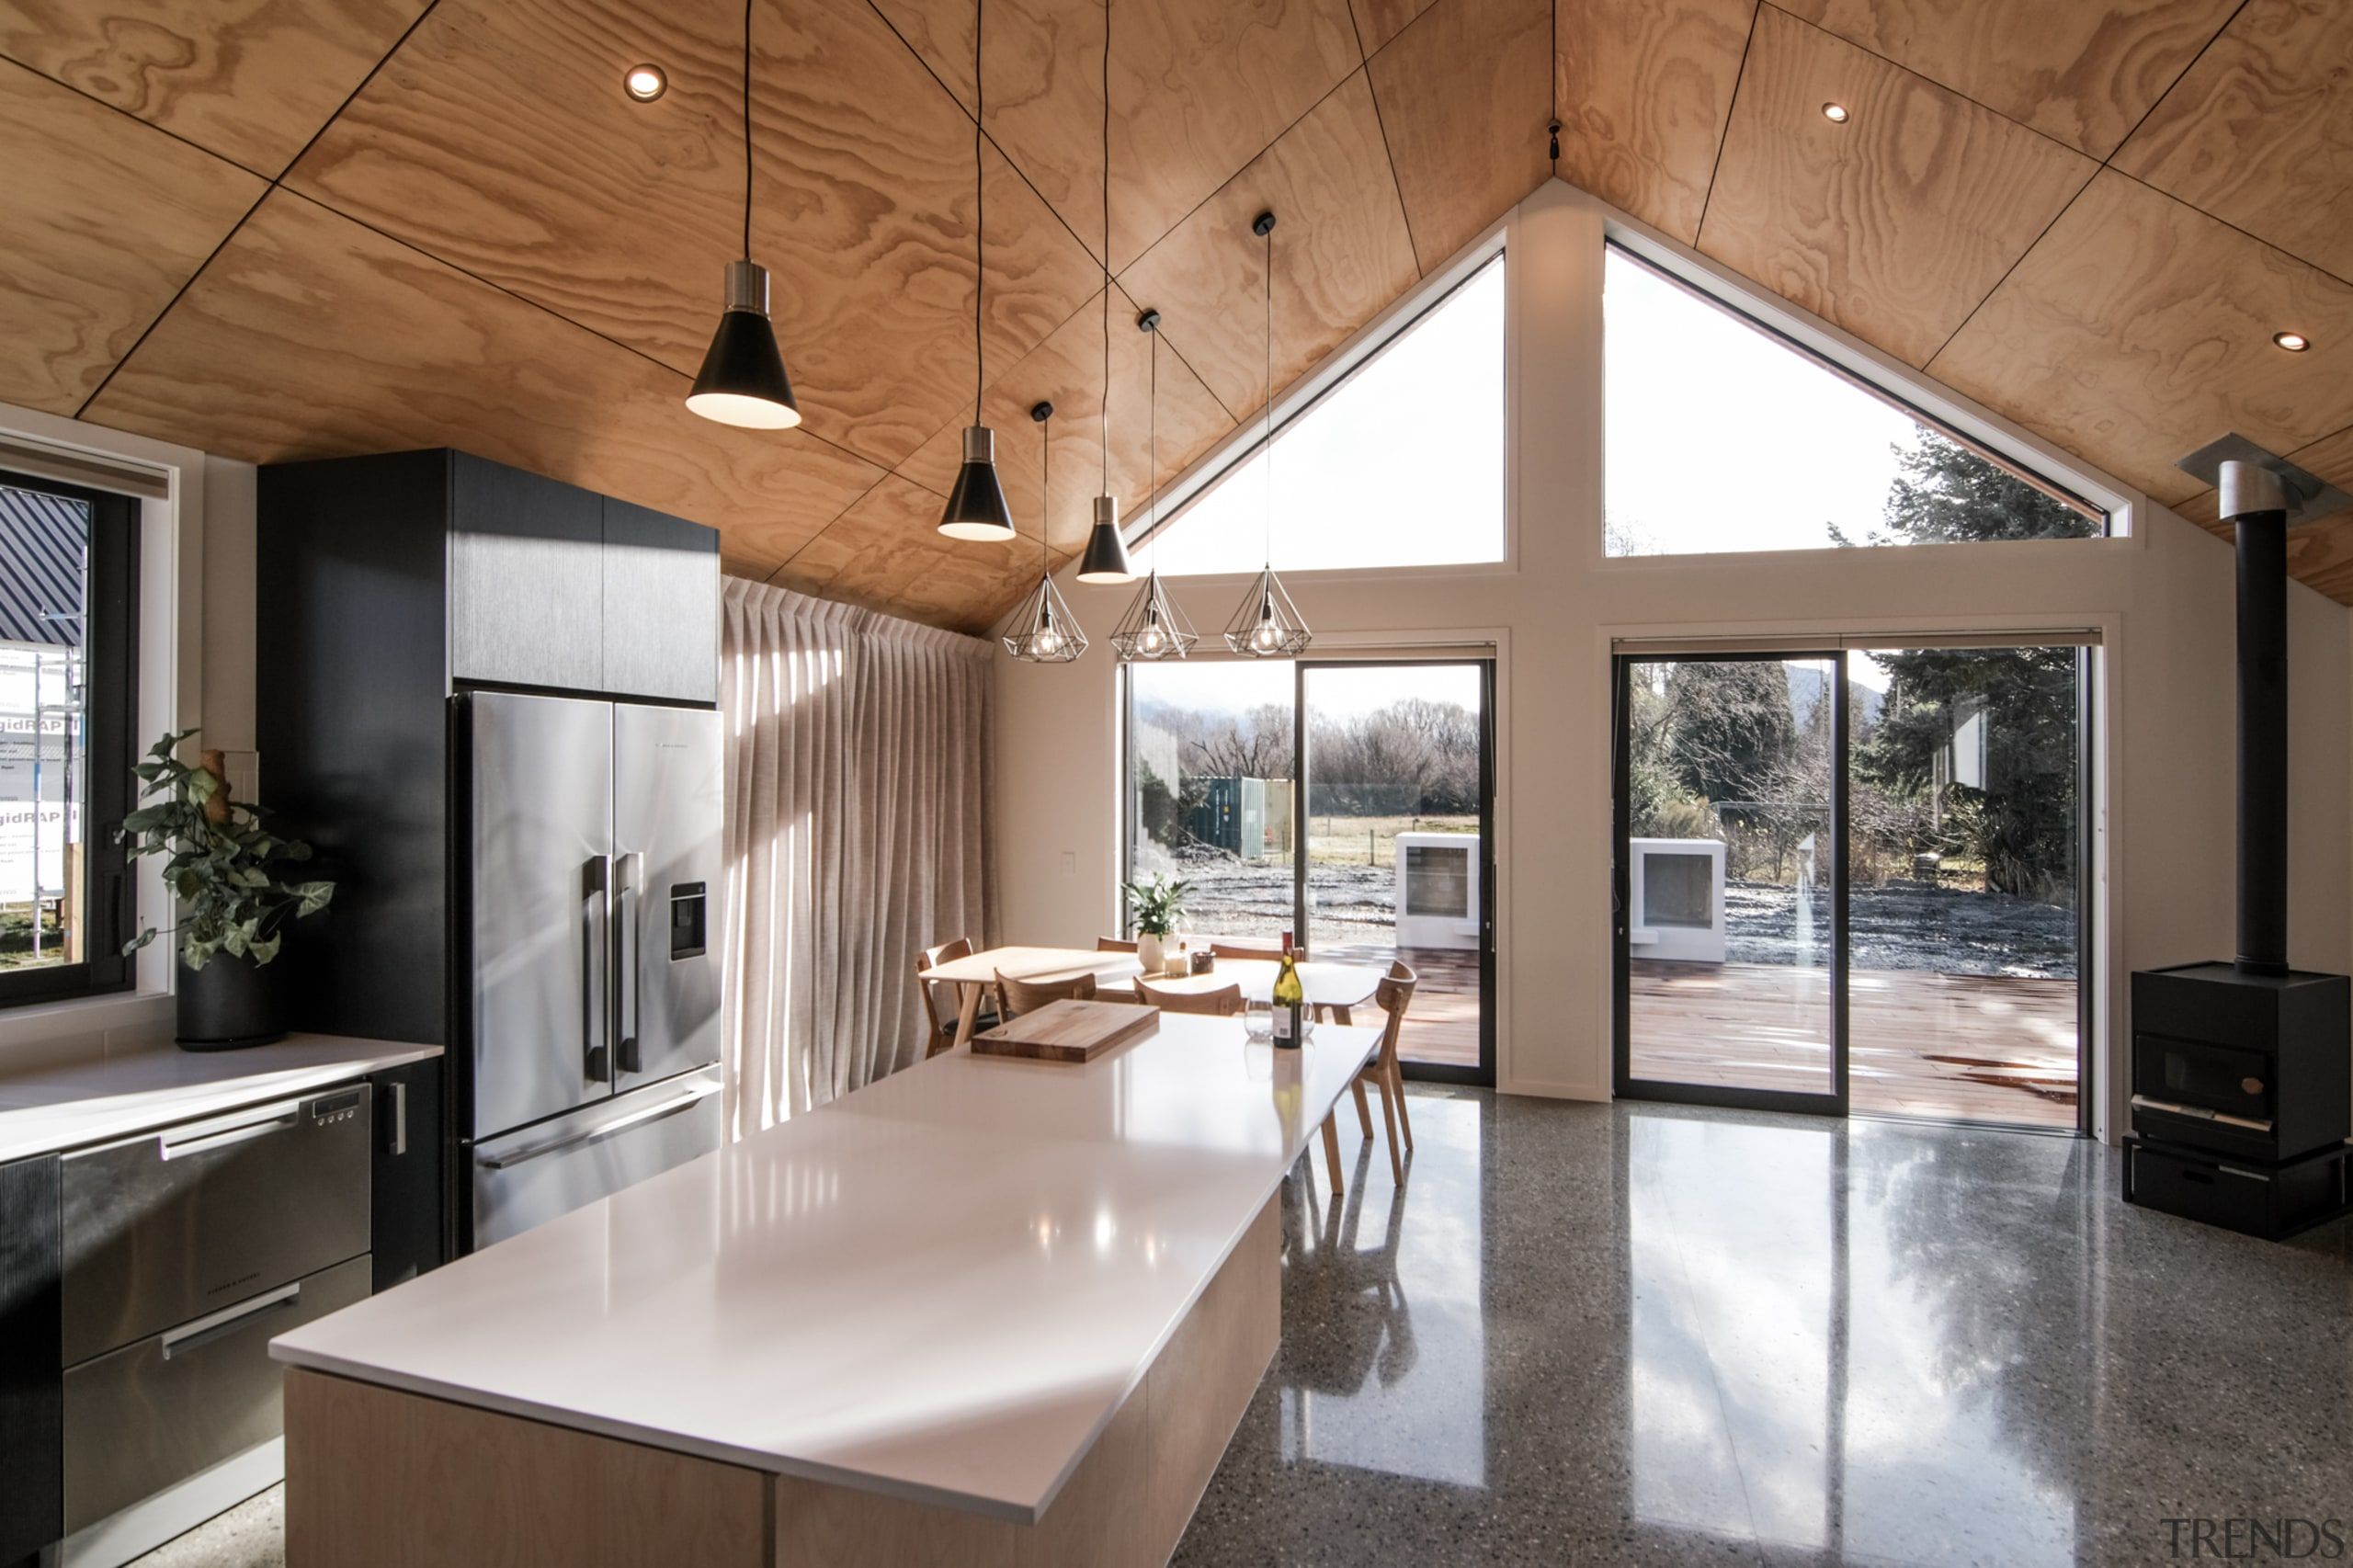 Gable roofs are not only ideal for heading